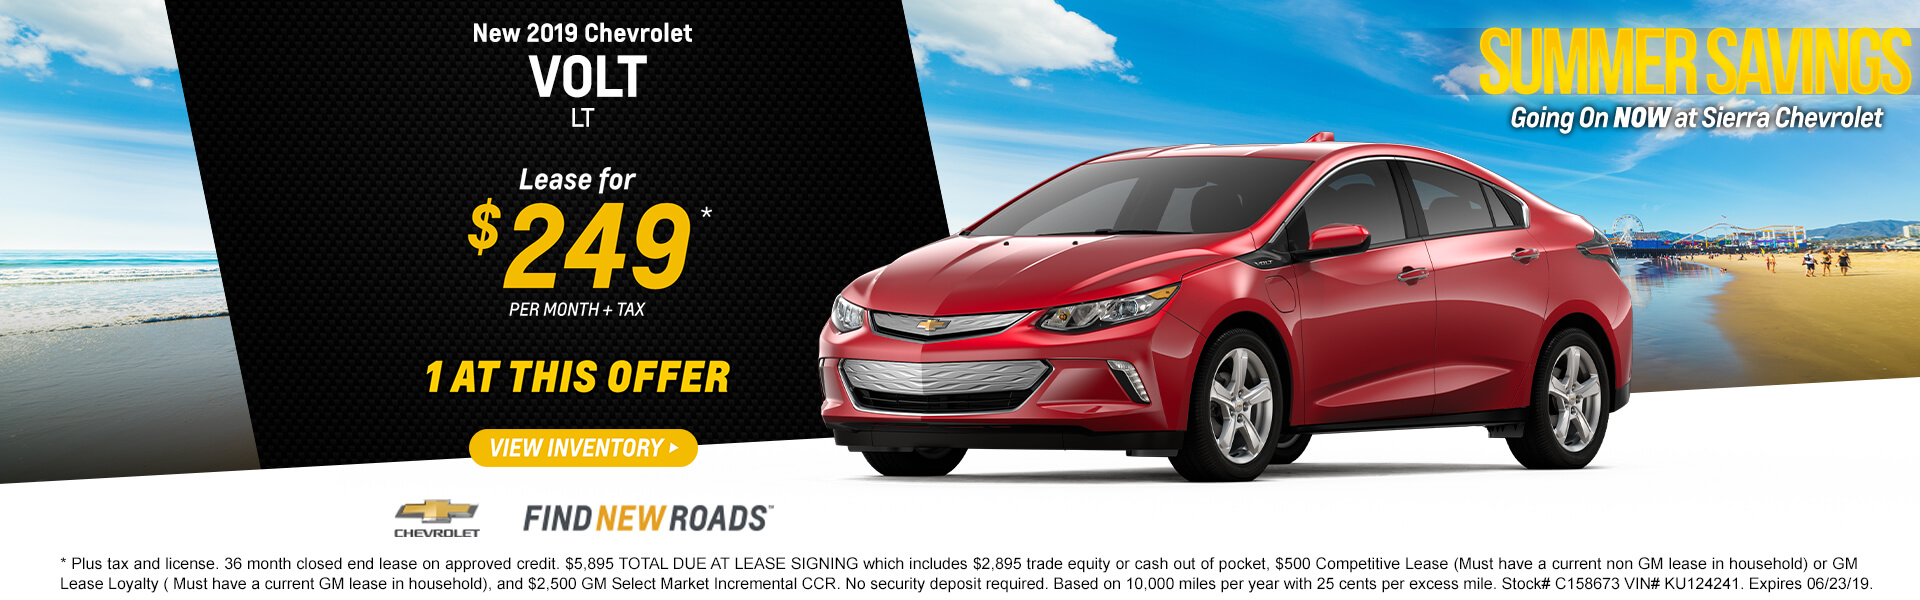 2019 Chevrolet Volt LT  Lease for $249* + tax per month  1 AT THIS OFFER  * Plus tax and license. 36 month closed end lease on approved credit. $5,895 TOTAL DUE AT LEASE SIGNING which includes $2,895 trade equity or cash out of pocket, $500 Competitive Lease (Must have a current non GM lease in household) or GM Lease Loyalty ( Must have a current GM lease in household), and $2,500 GM Select Market Incremental CCR. No security deposit required. Based on 10,000 miles per year with 25 cents per excess mile. Stock# C158673 VIN# KU124241. Expires 06/23/19.